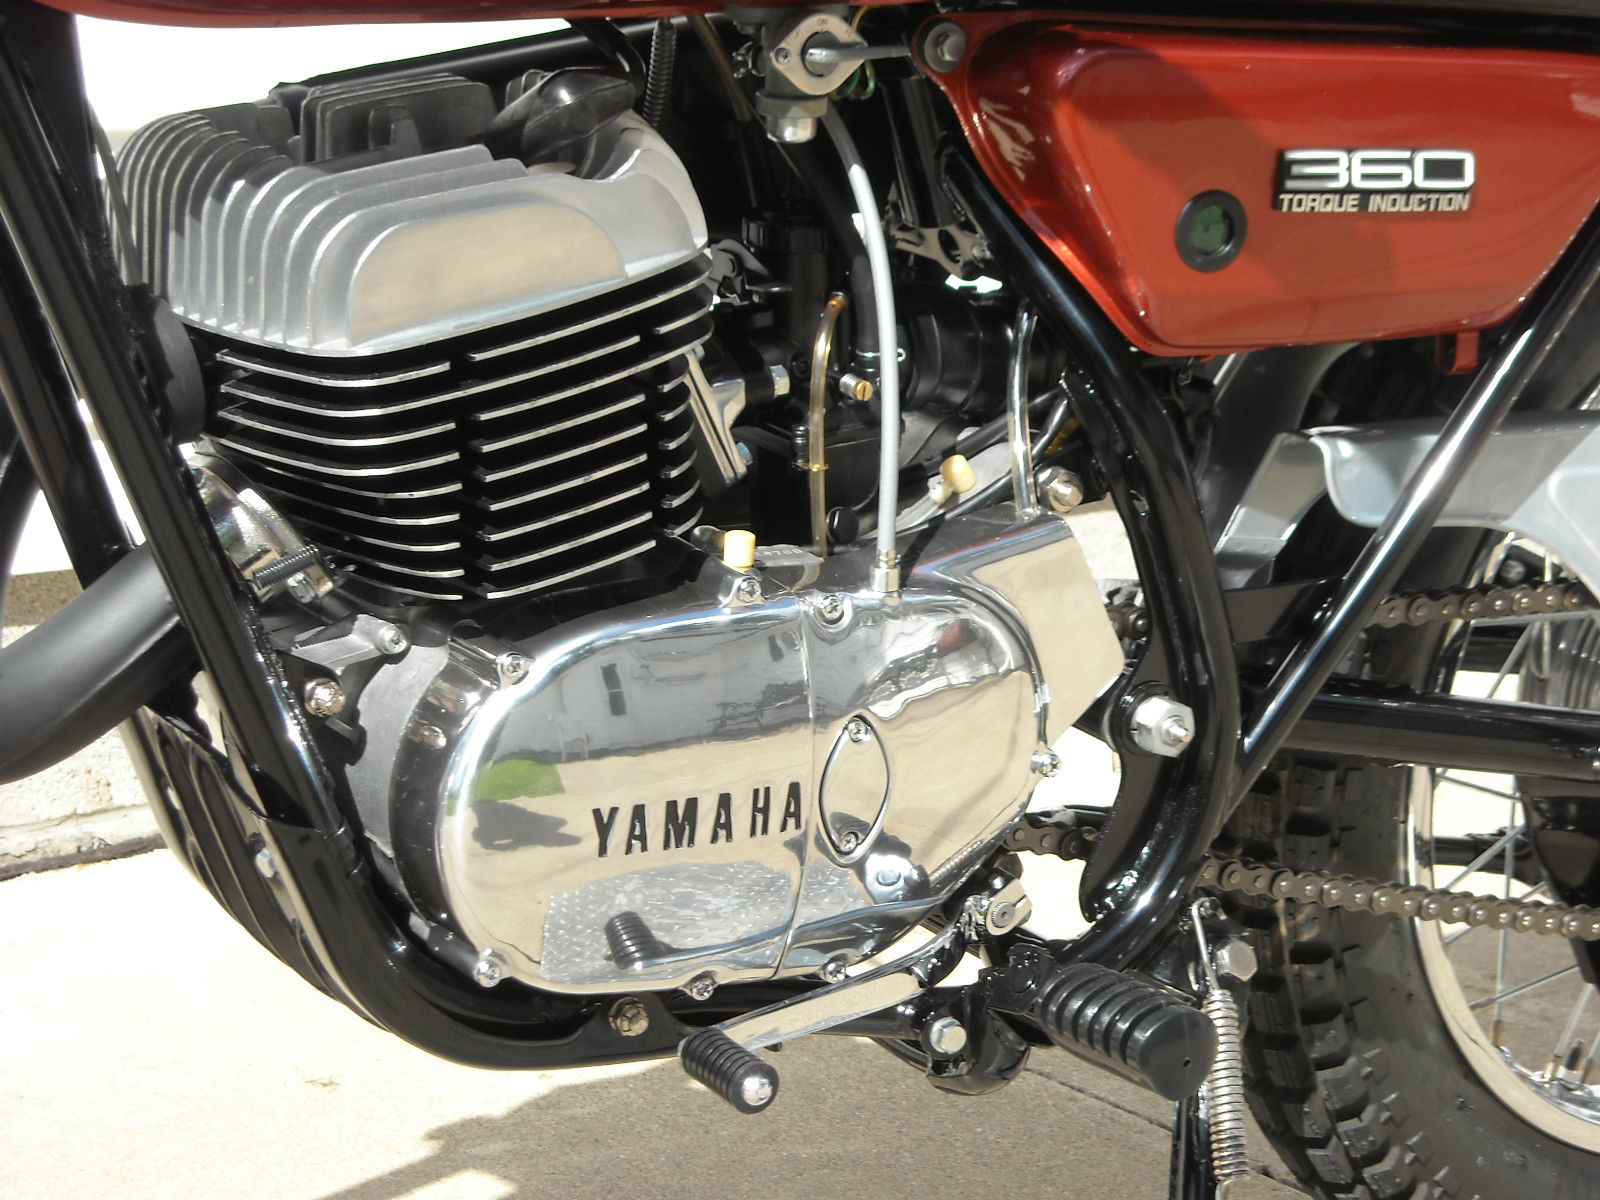 Yamaha 360 RT3 - 1973 - Gear Lever, Engine Case, Cylinder Head, Fuel Tap and Oil Tank.